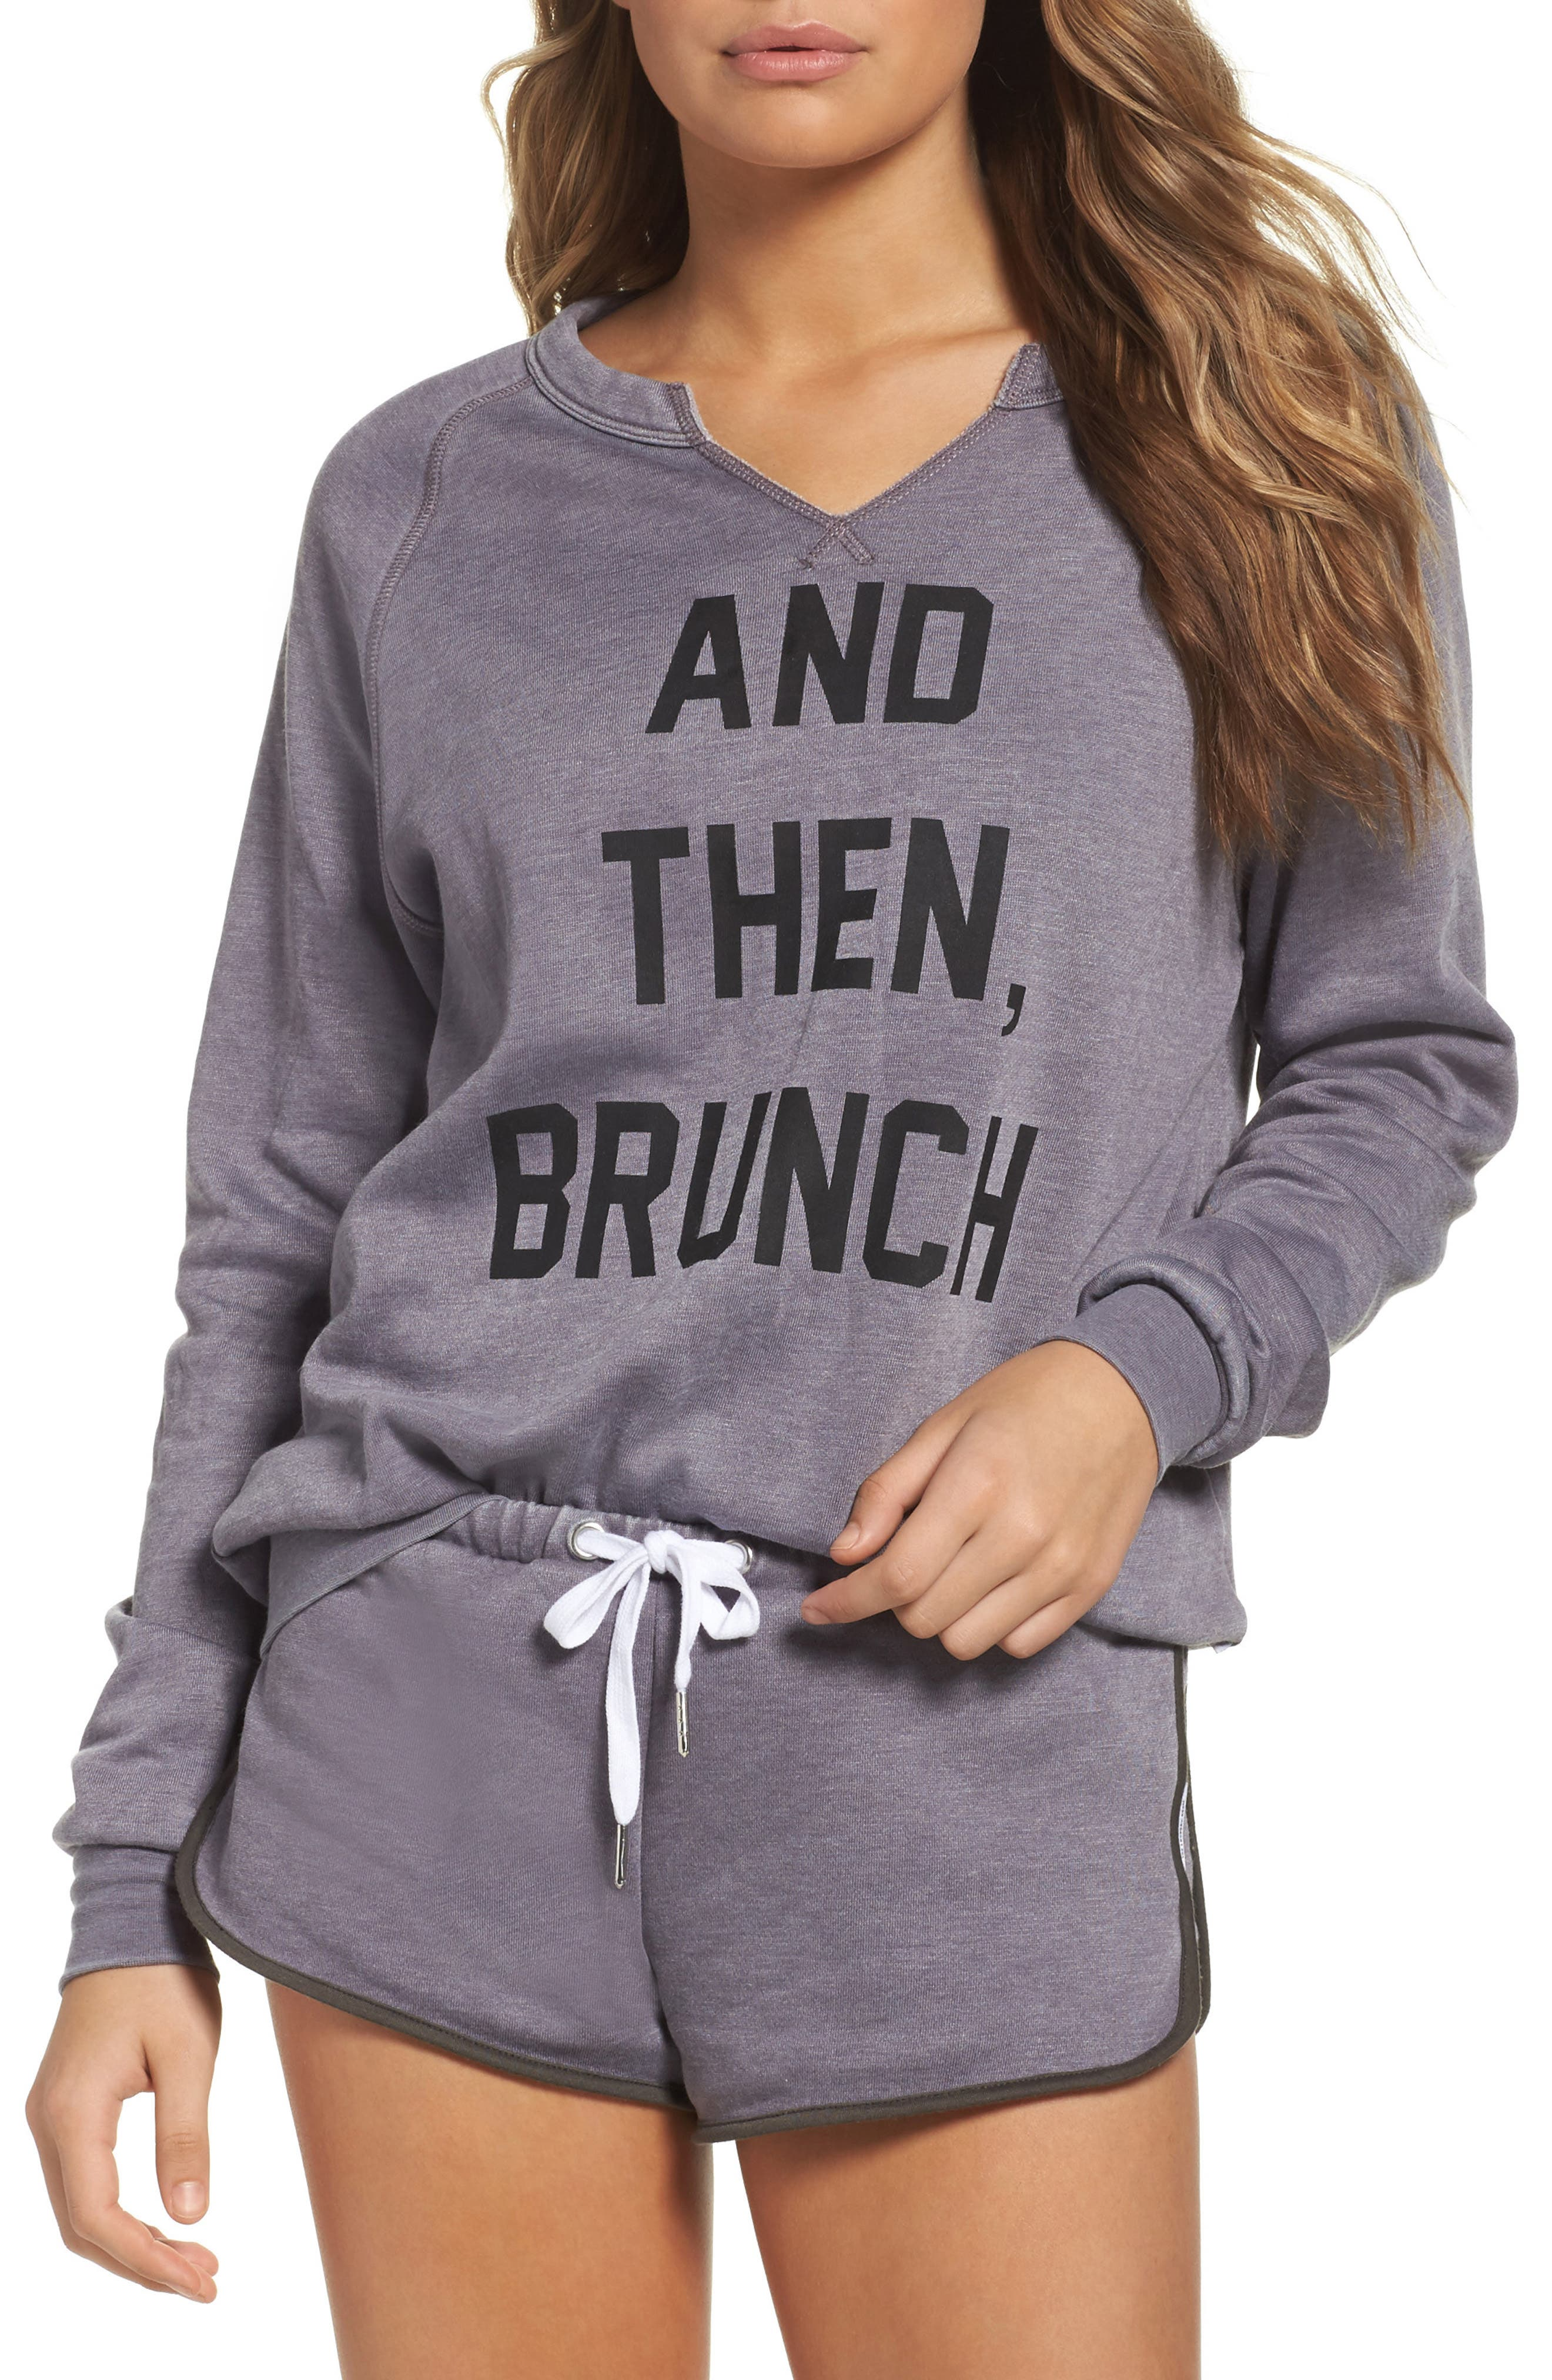 The Laundry Room And Then Brunch Sweatshirt